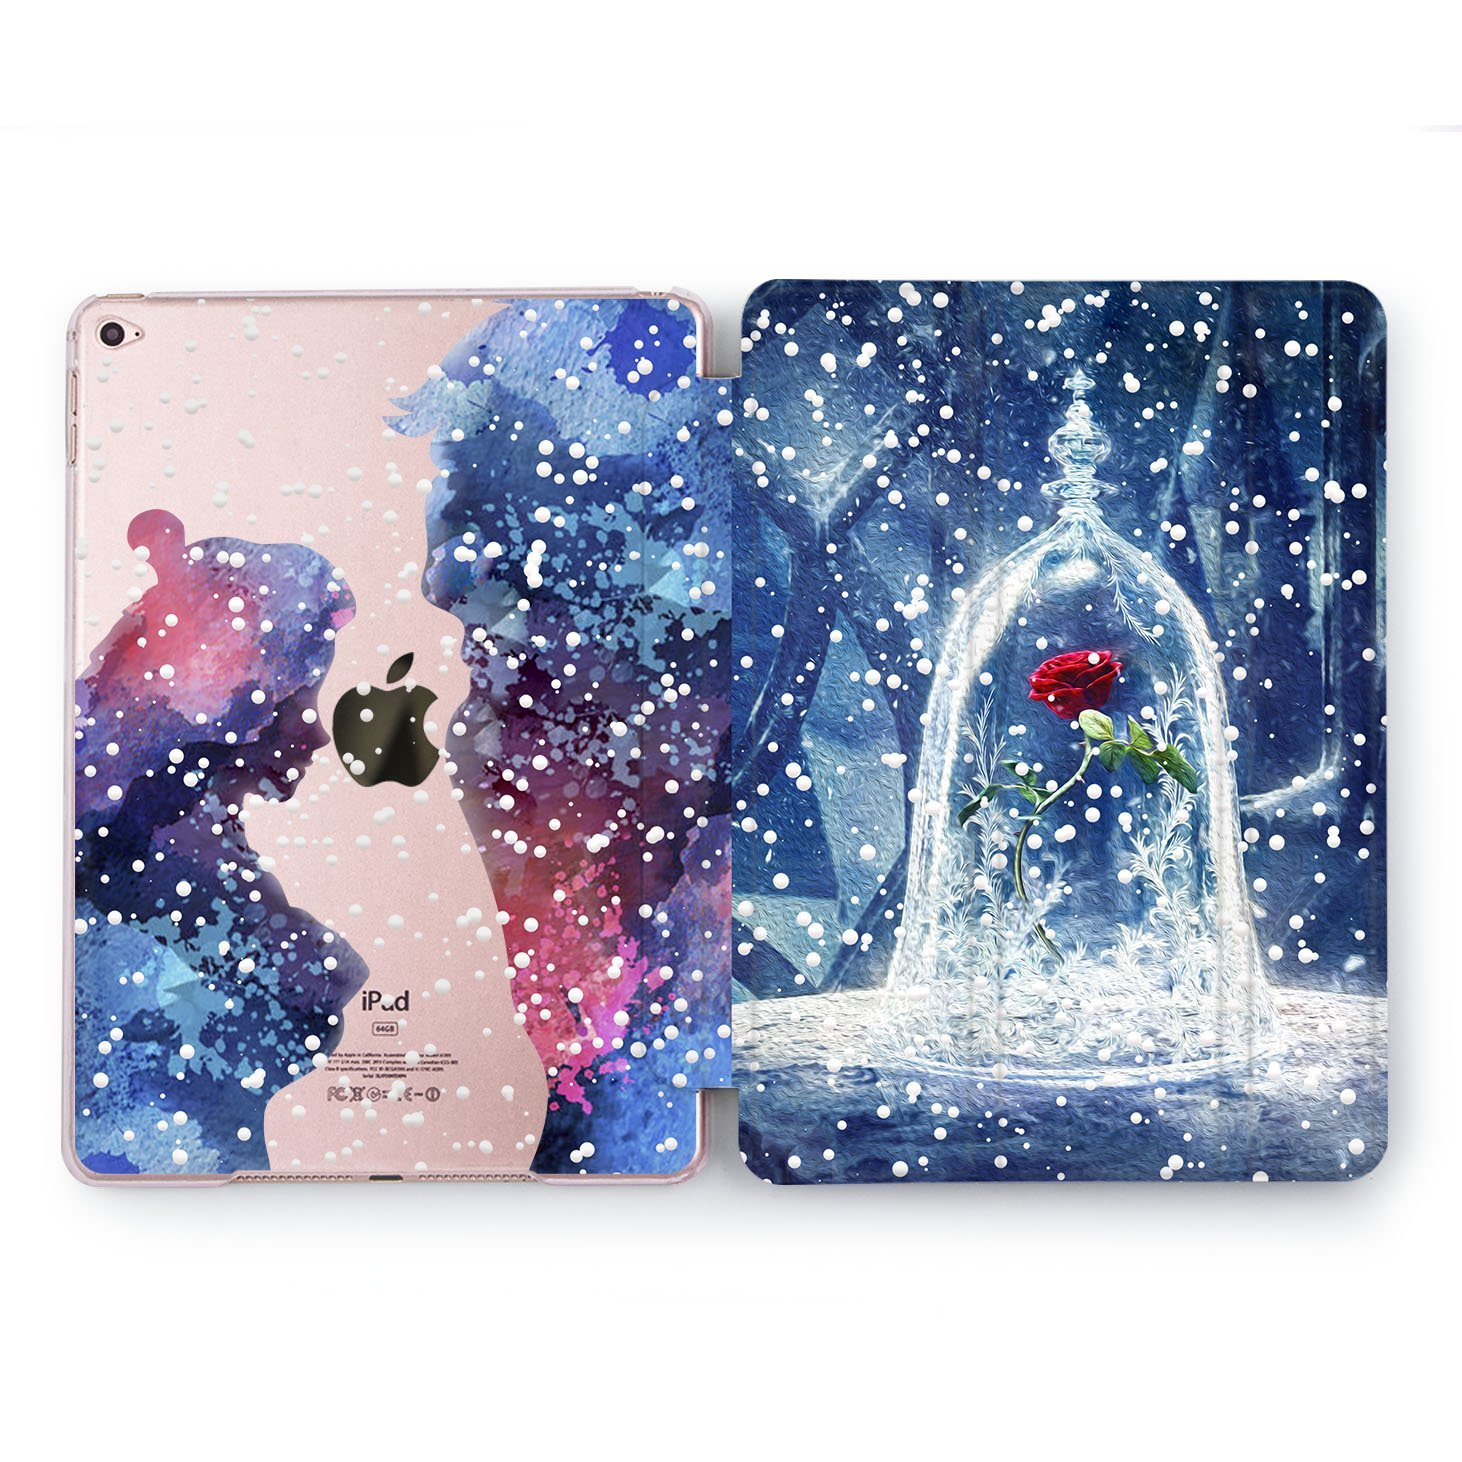 Wonder Wild iPad Case 9.7 6th 5th Gen Smart Hard Cover iPad Pro 9.7 inch Clear Disney Rose Fairytale Design 2018 2017 | A1822 A1823 A1893 A1954 A1673 A1674 A1675 | Beauty and the Beast Watercolor